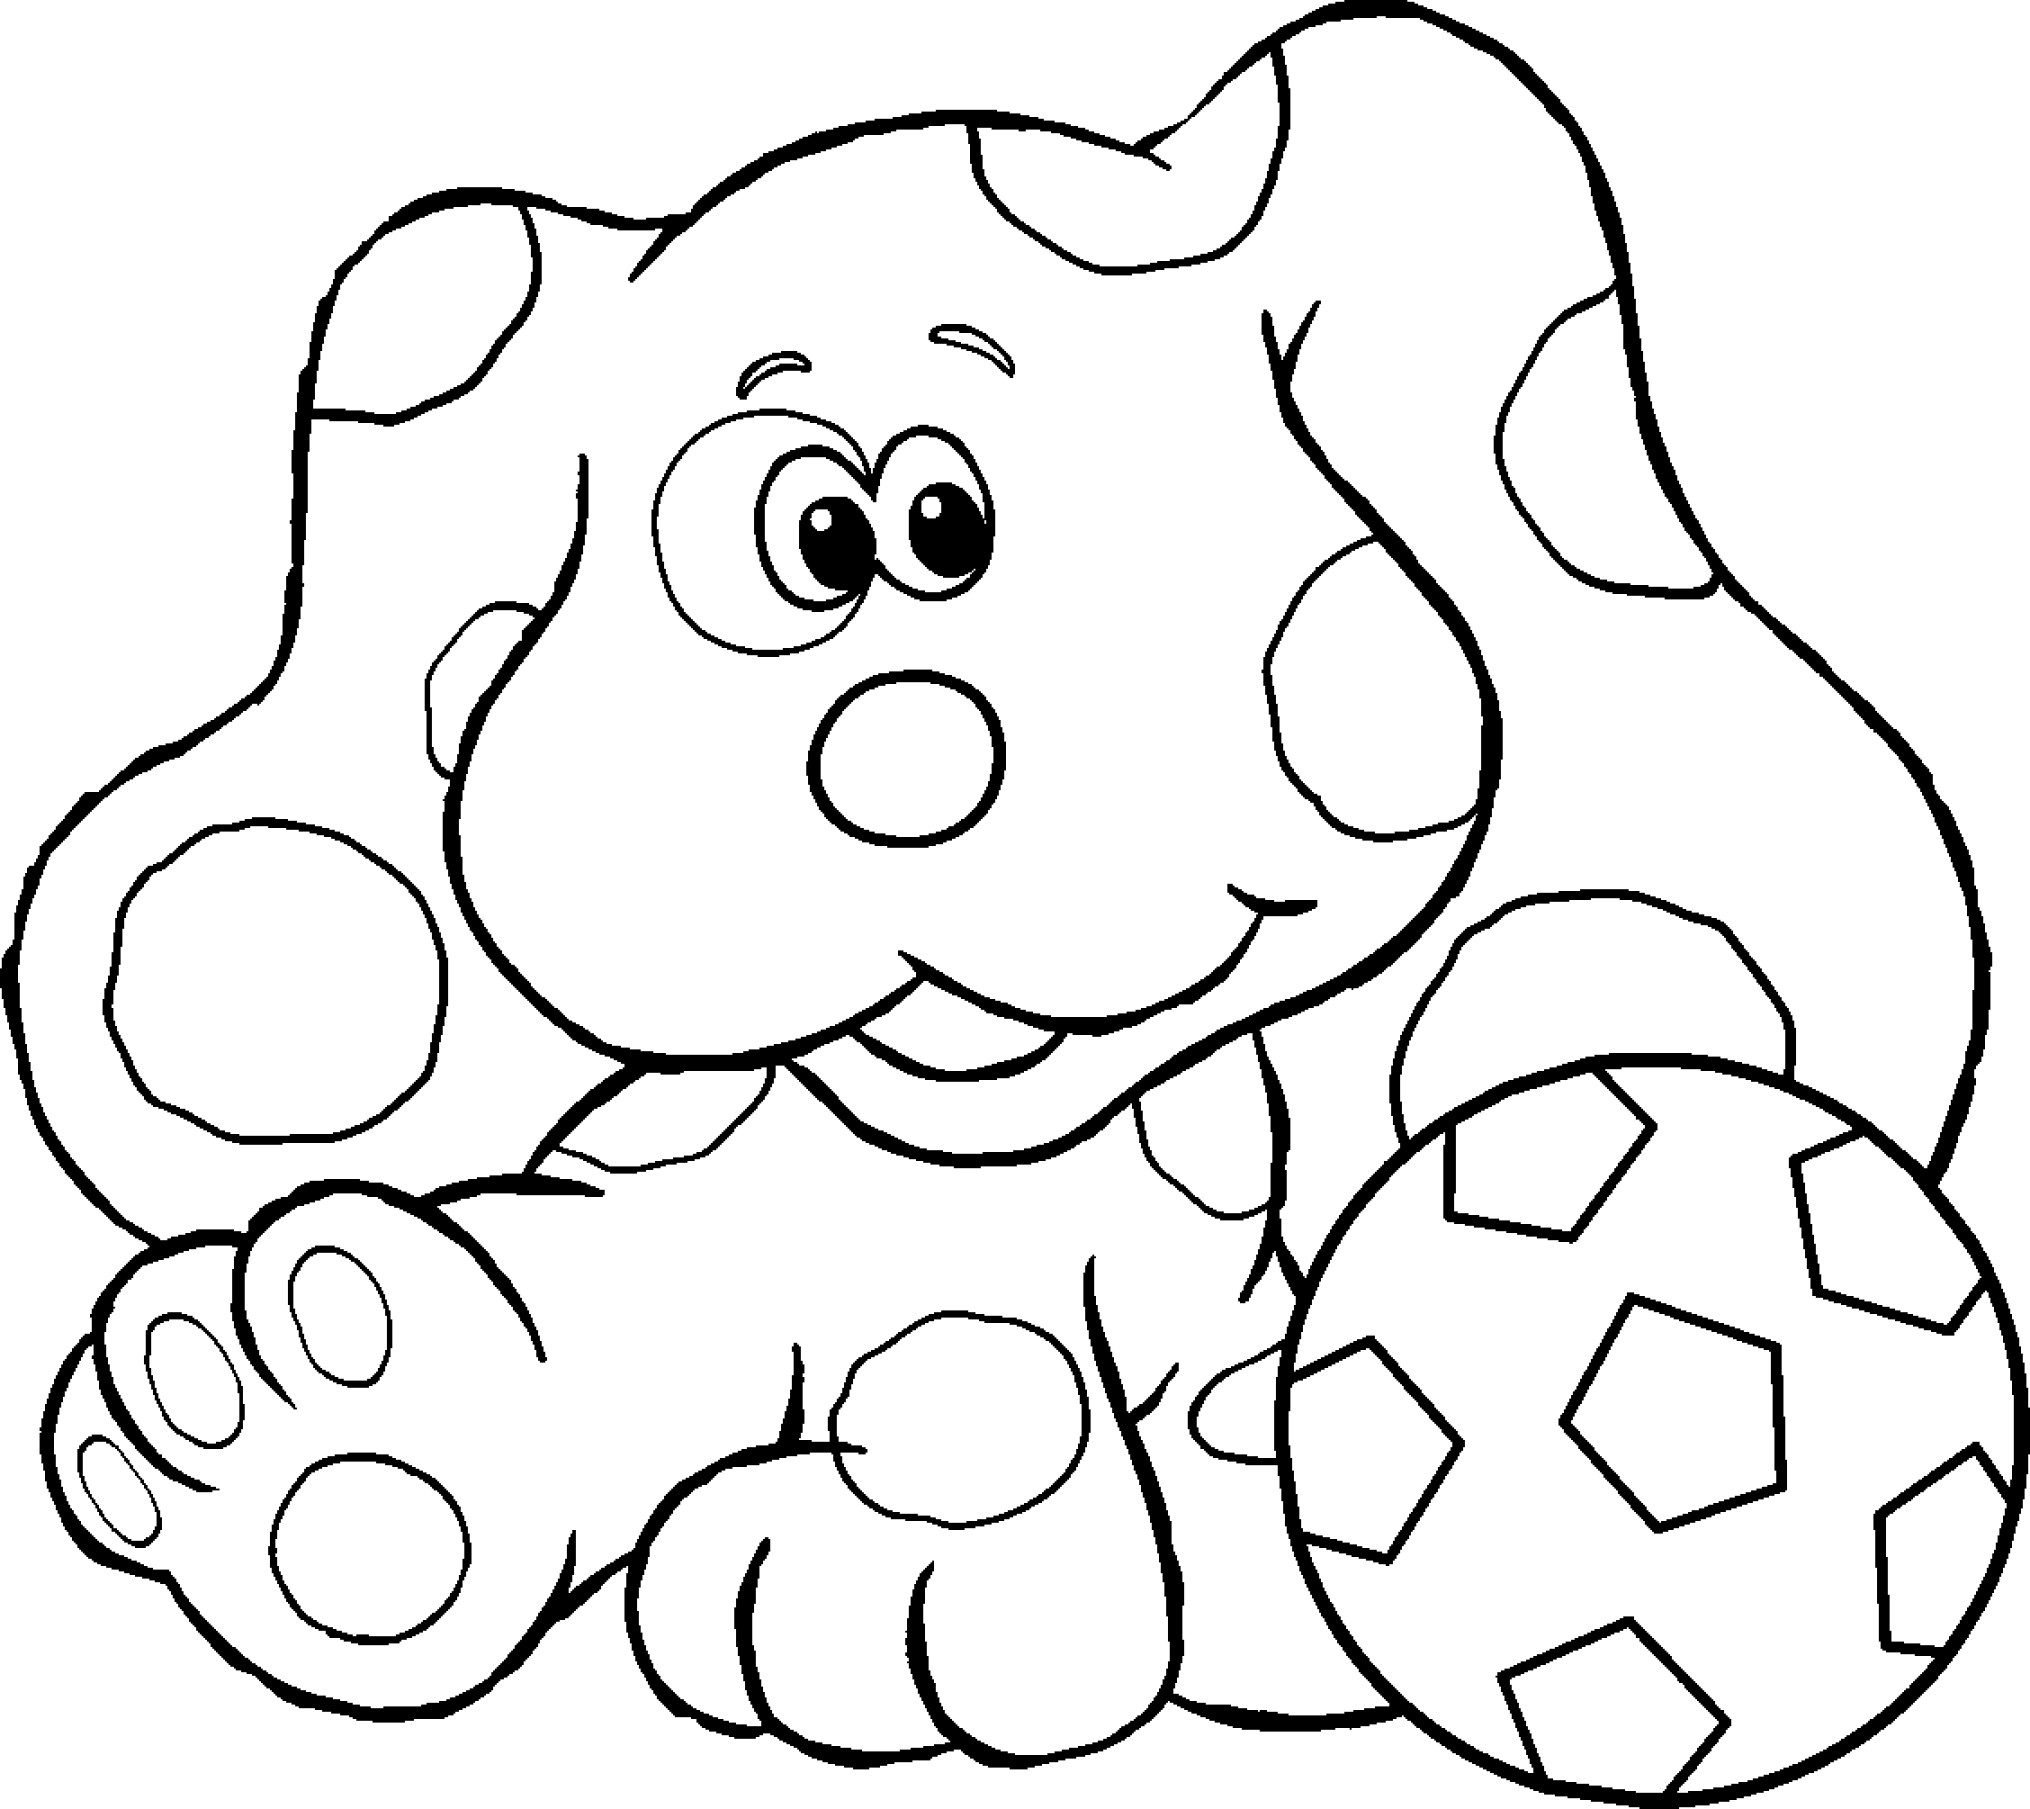 Playground Equipment Coloring Pages